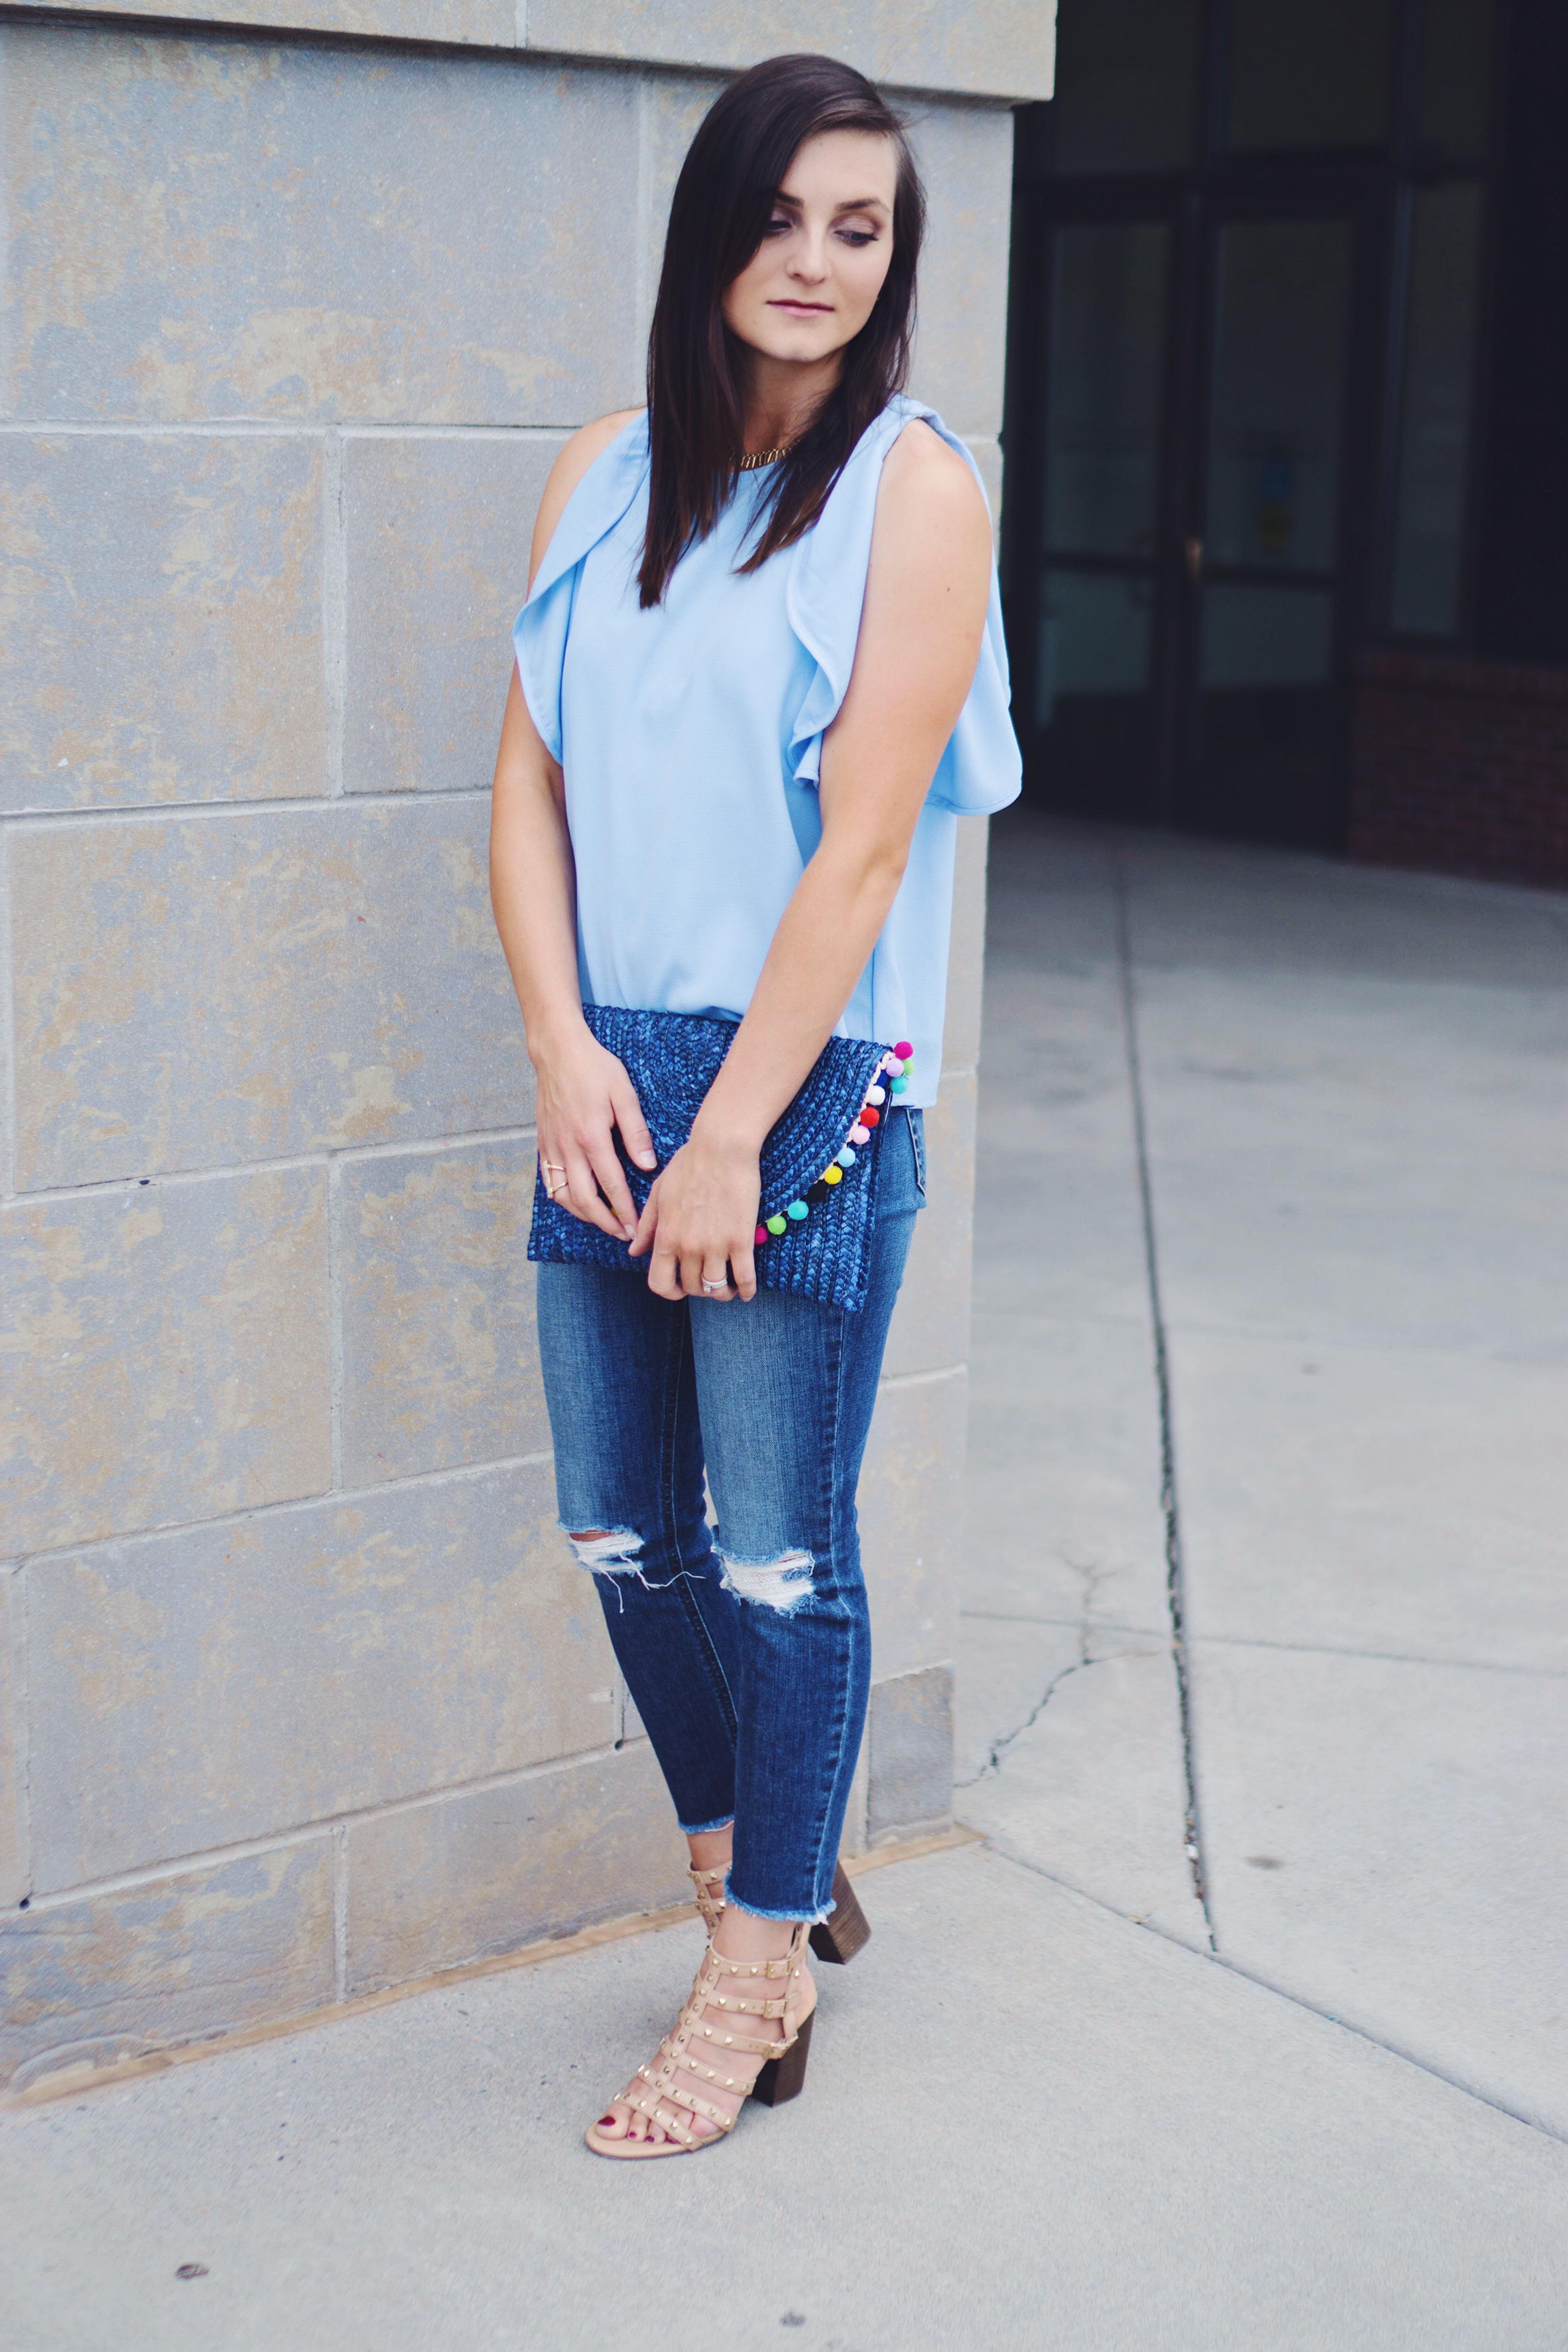 """<img src =""""flutter-sleeve-tank-joes-jeans-collector's-blondie-desstroyed-skinny-jeans-coppola-valentino-rockstud-dupe-betsyville-naveah-gladiator-sandal-heel-pom-pom-straw-clutch-teddy-bears-and-lipstick-summer-style-outift"""""""